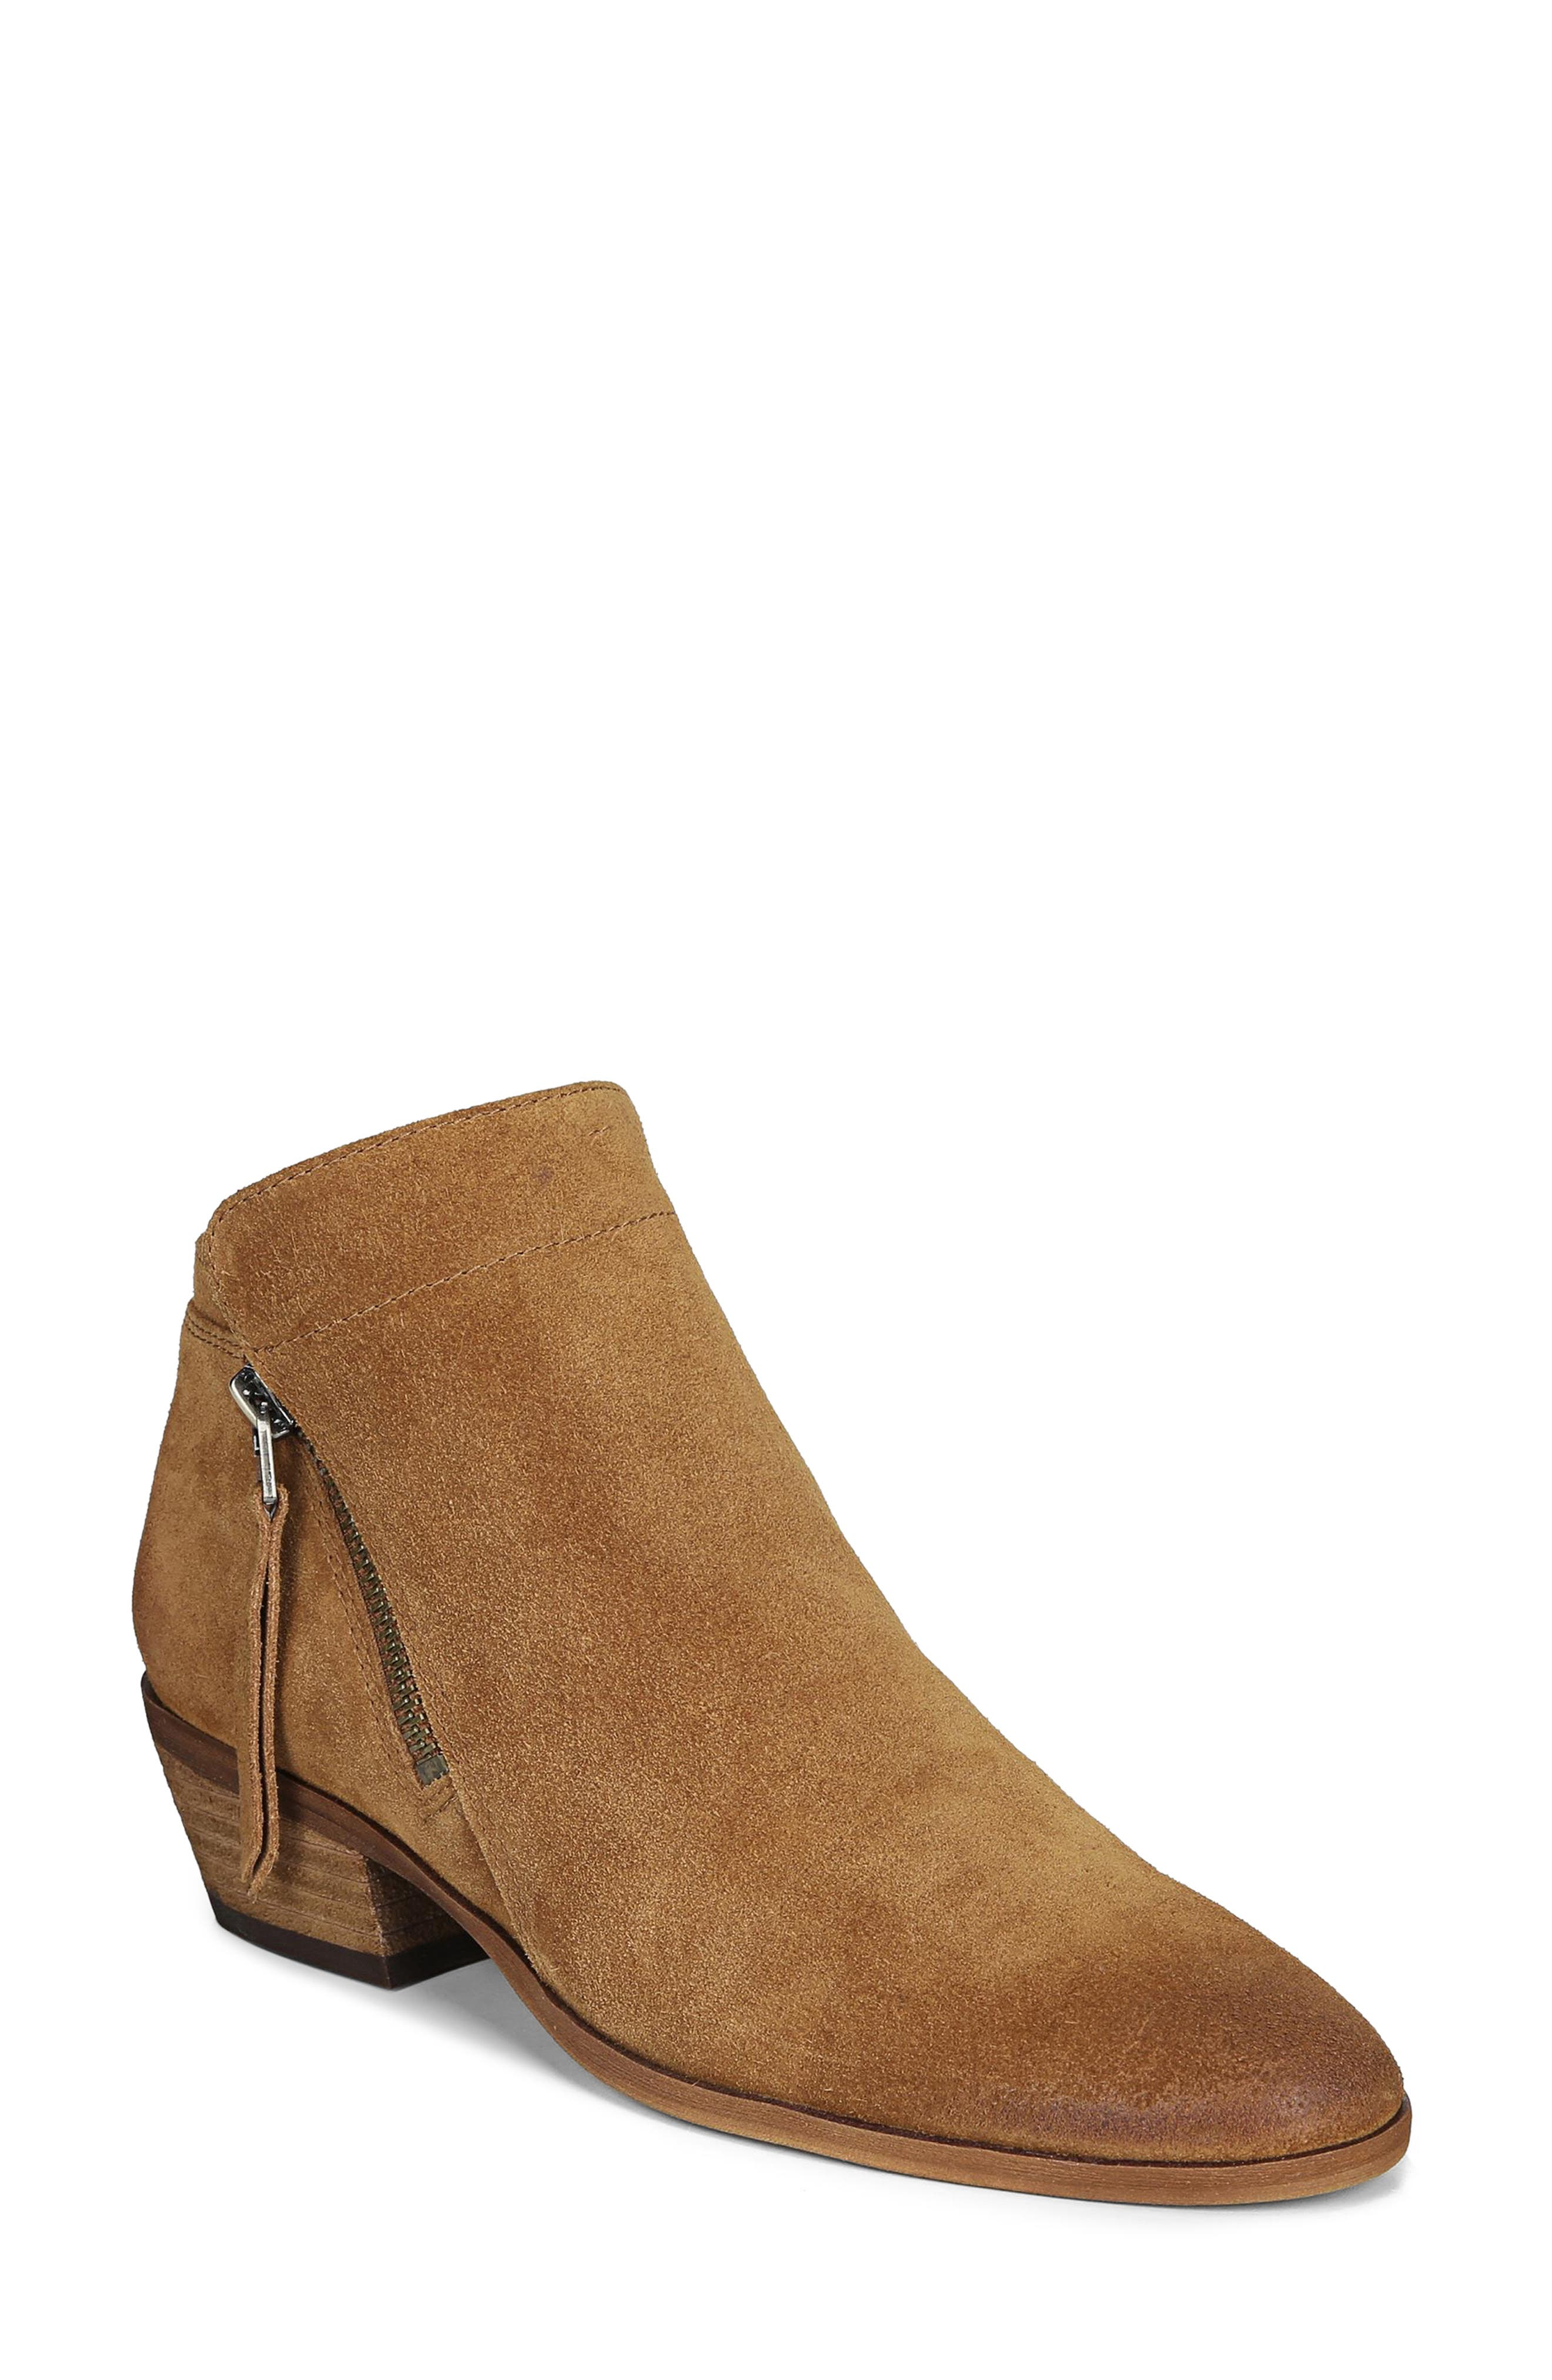 Packer Bootie,                         Main,                         color, LUGGAGE SUEDE LEATHER